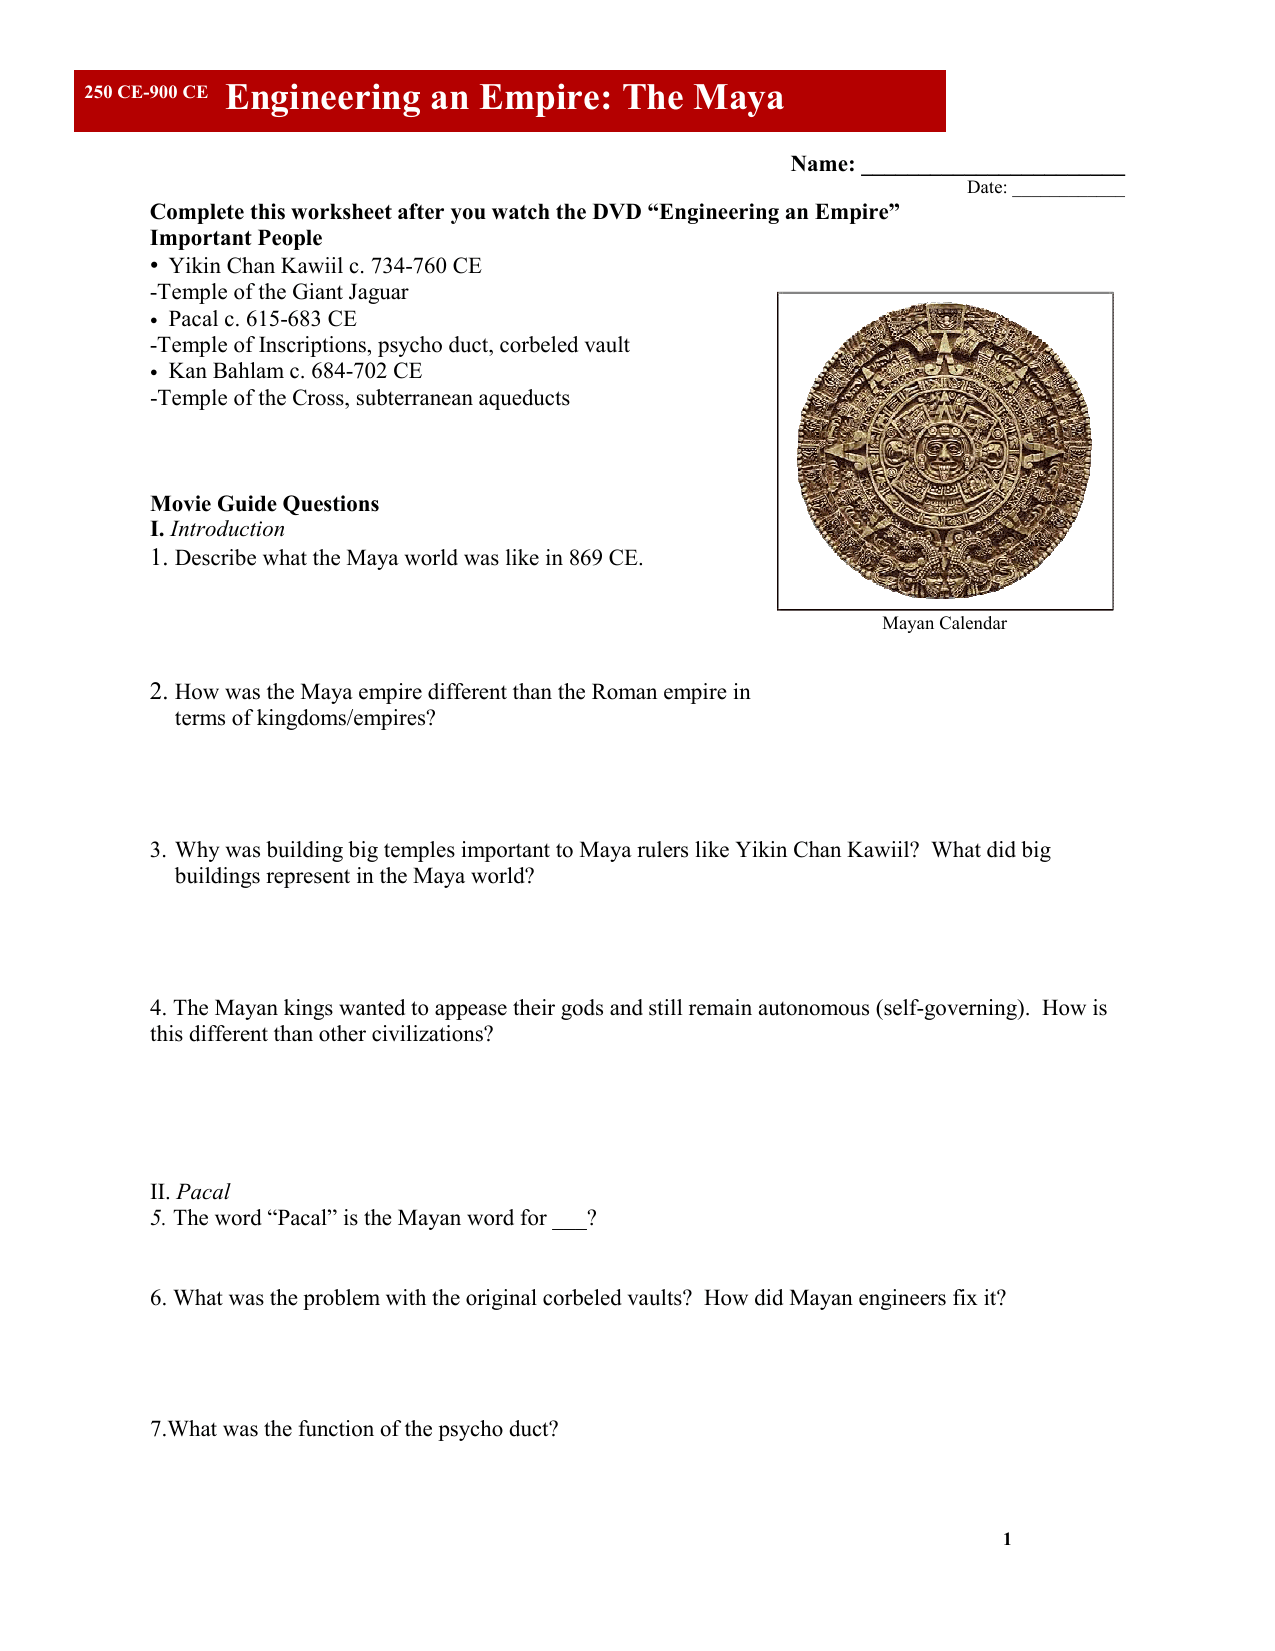 Greece Engineering An Empire Worksheet Answers